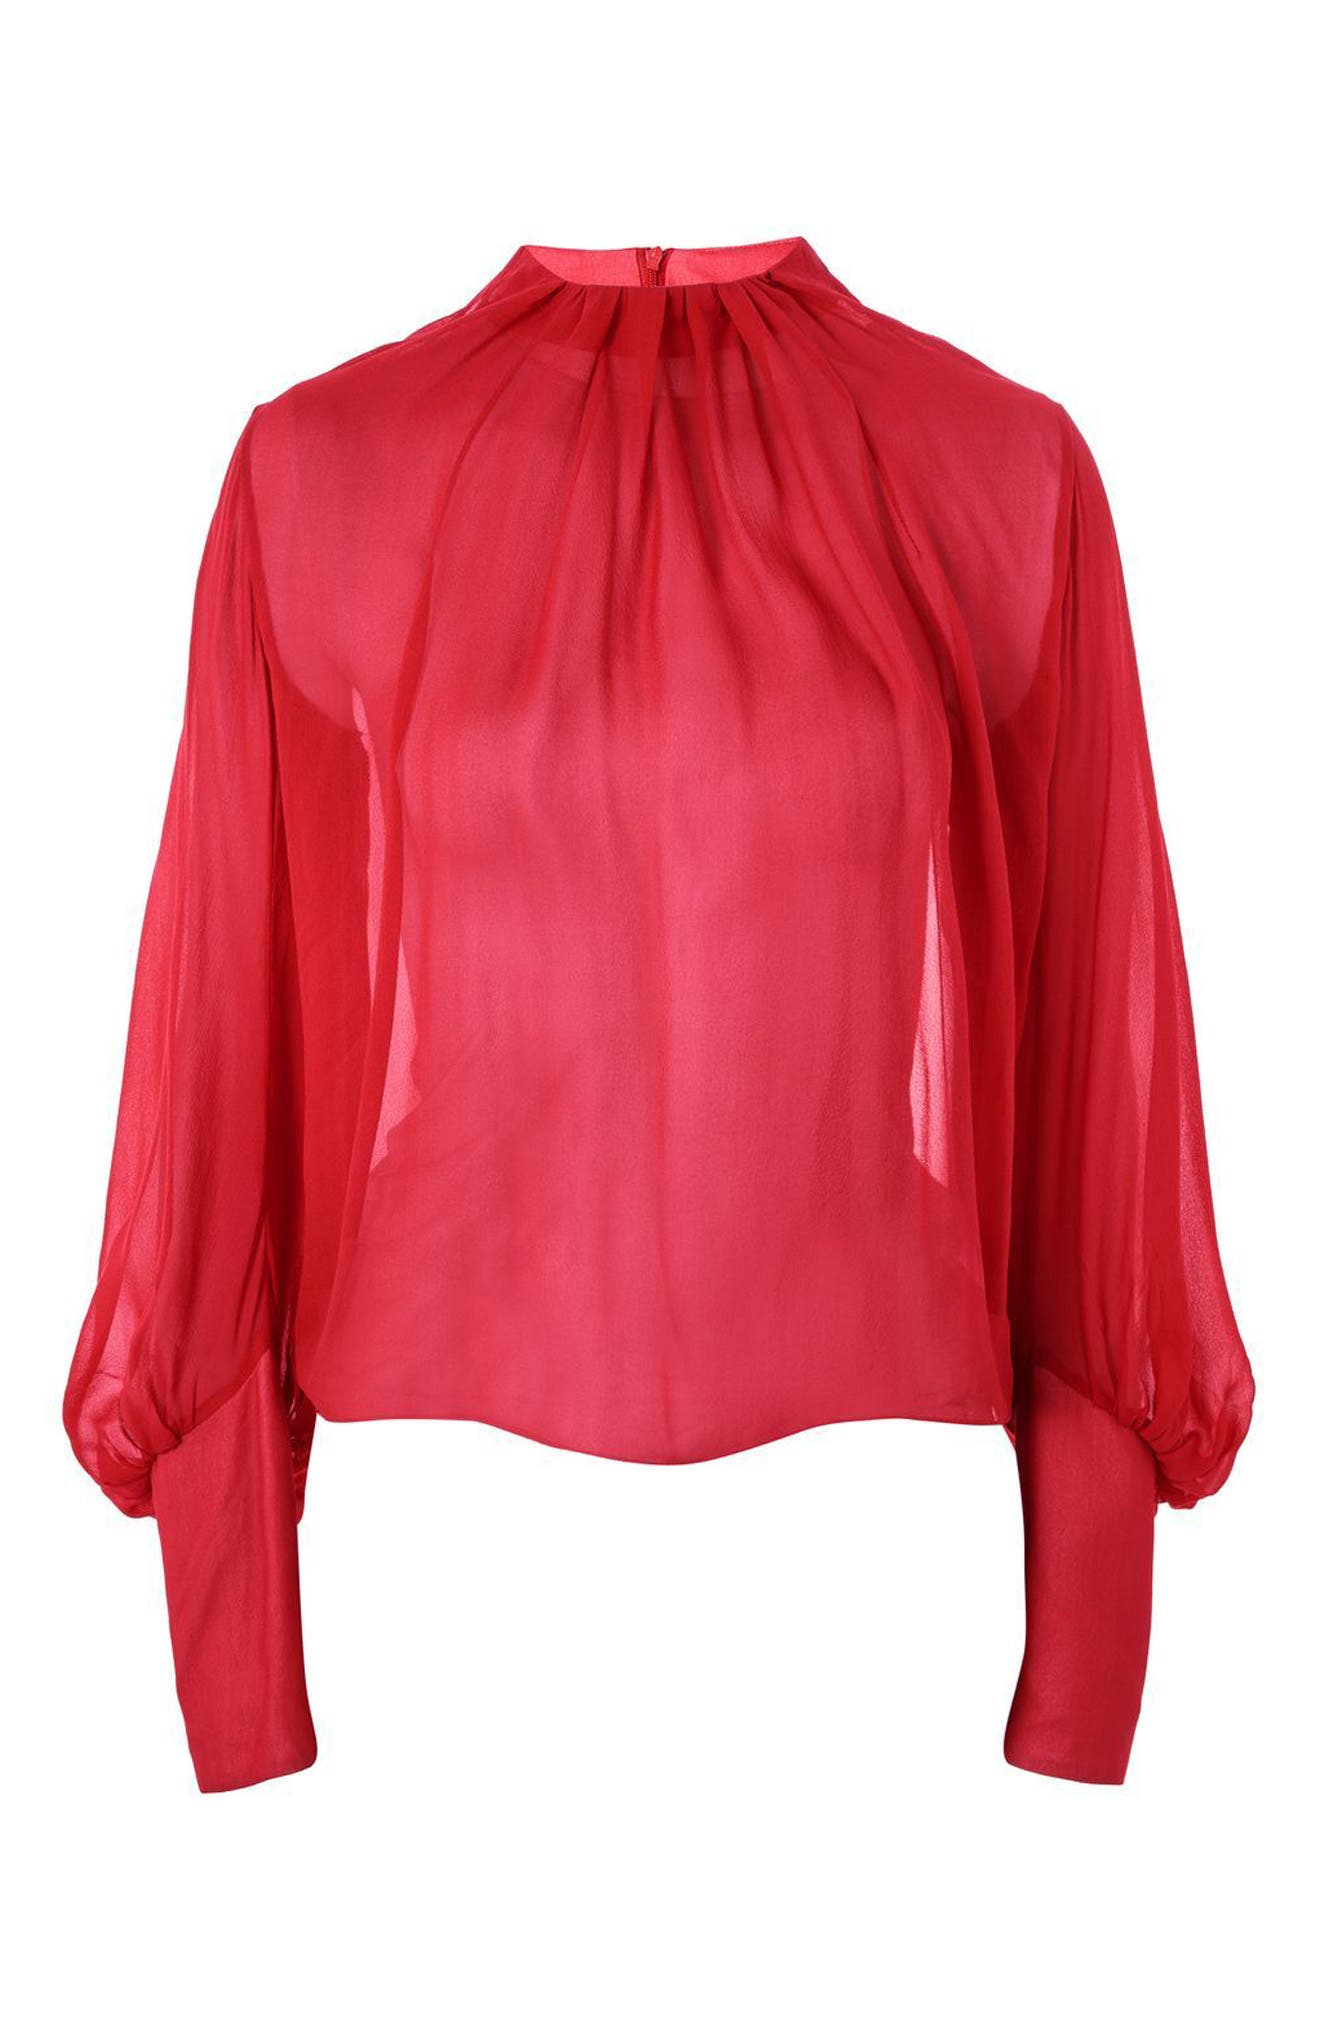 Red Taffeta Blouse